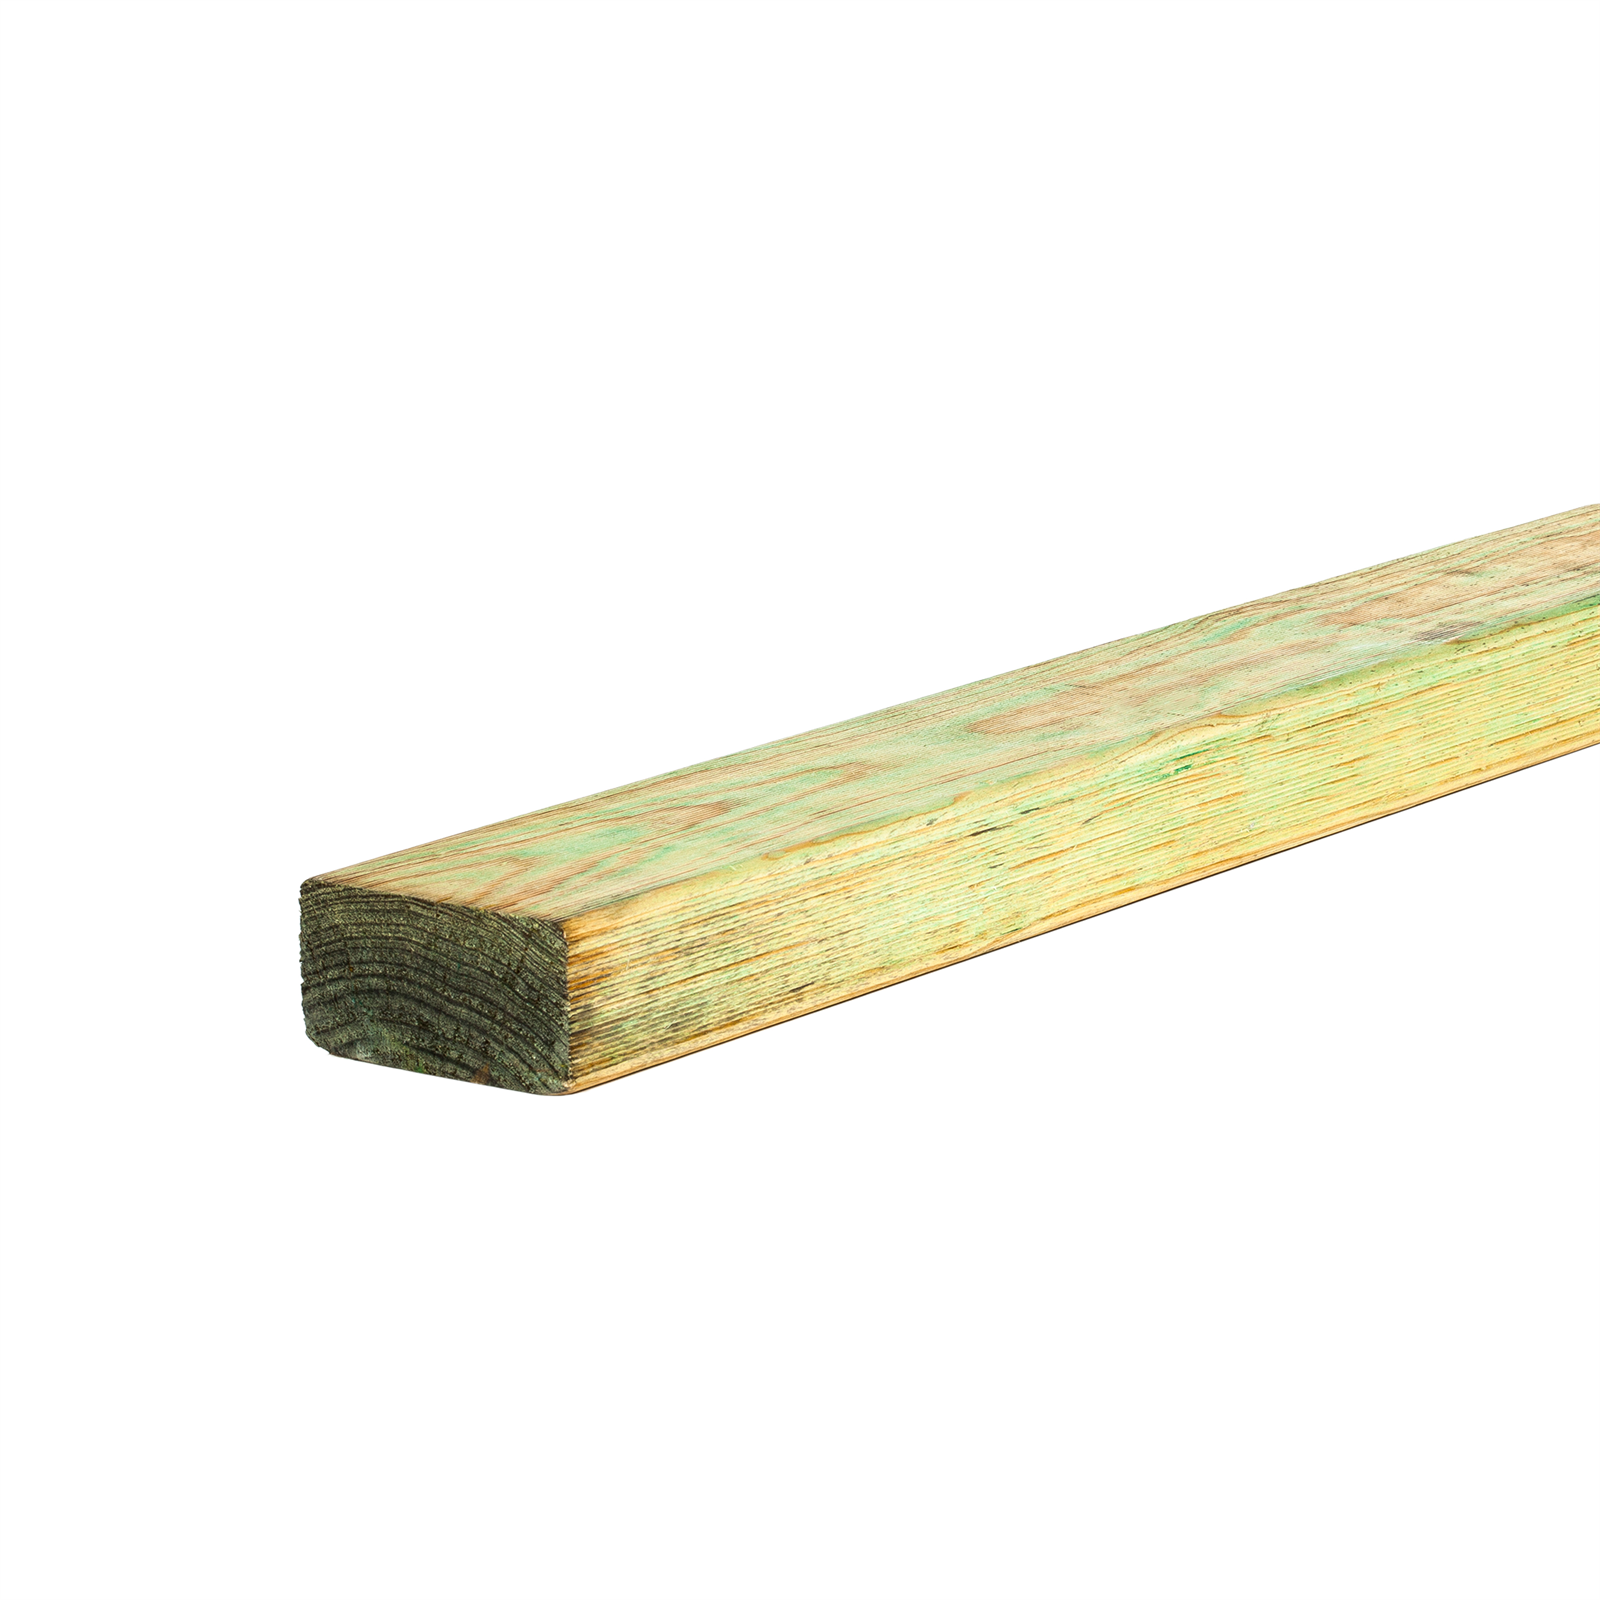 Treated Pine Outdoor Timber Framing  90 x 45mm